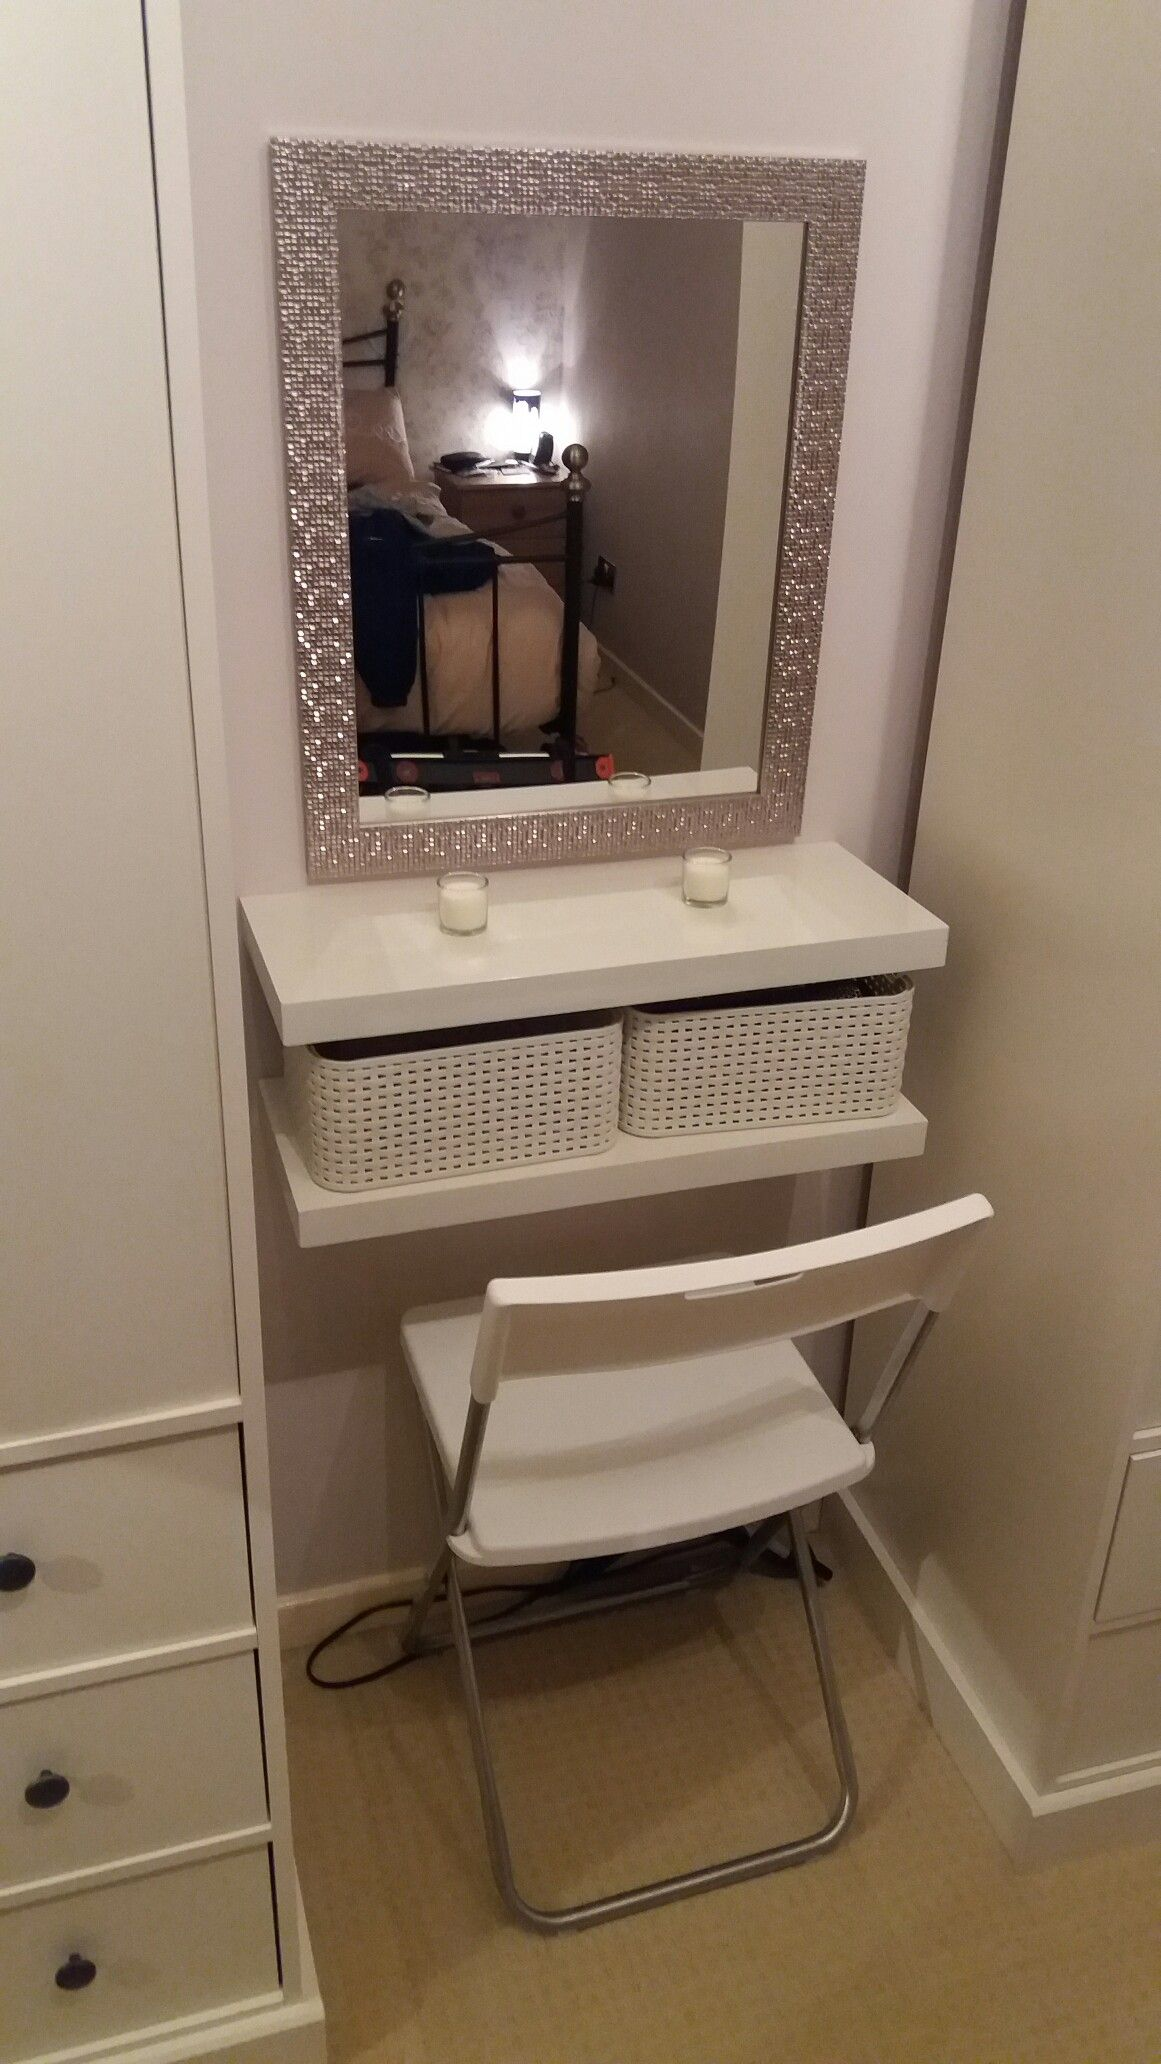 diy dressing table floating shelves crates seat and mirror makeup shelf very small bathroom storage ideas custom shelving wooden cart bracket size for foot pipe hardware thin unit